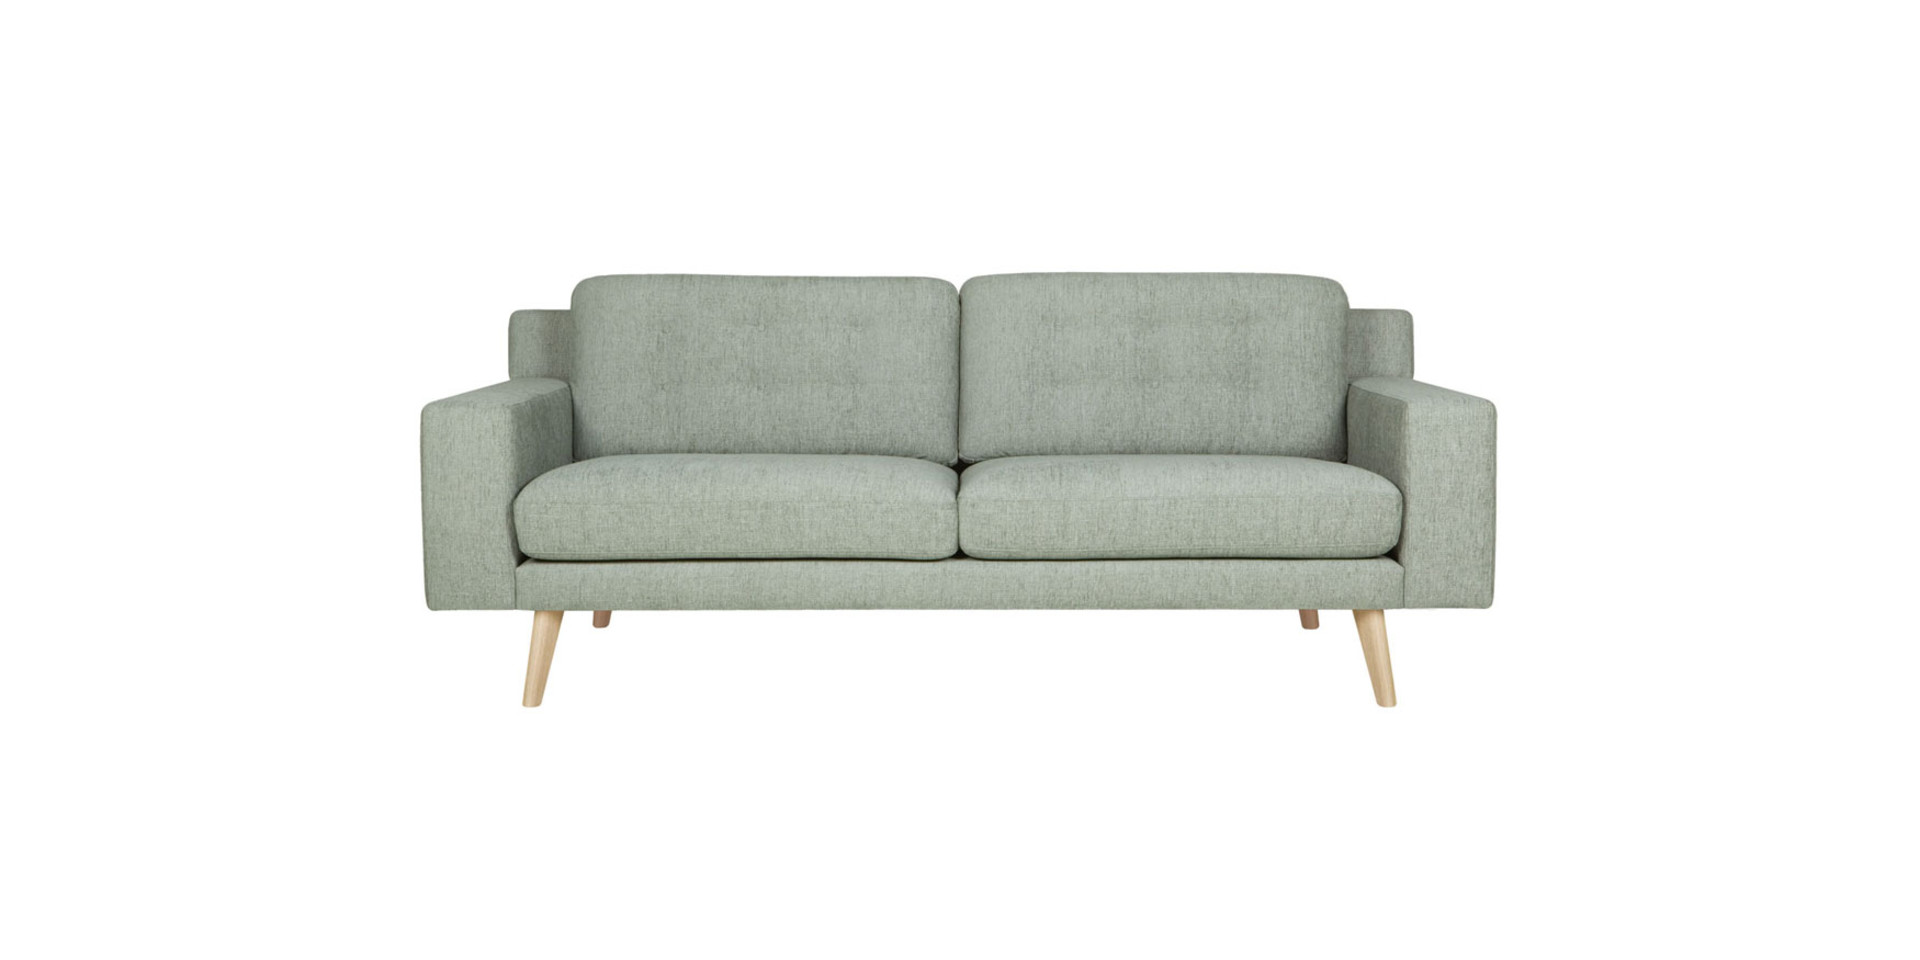 sits-axel-canape-3seater_riscorunner9_blue_grey_1_0